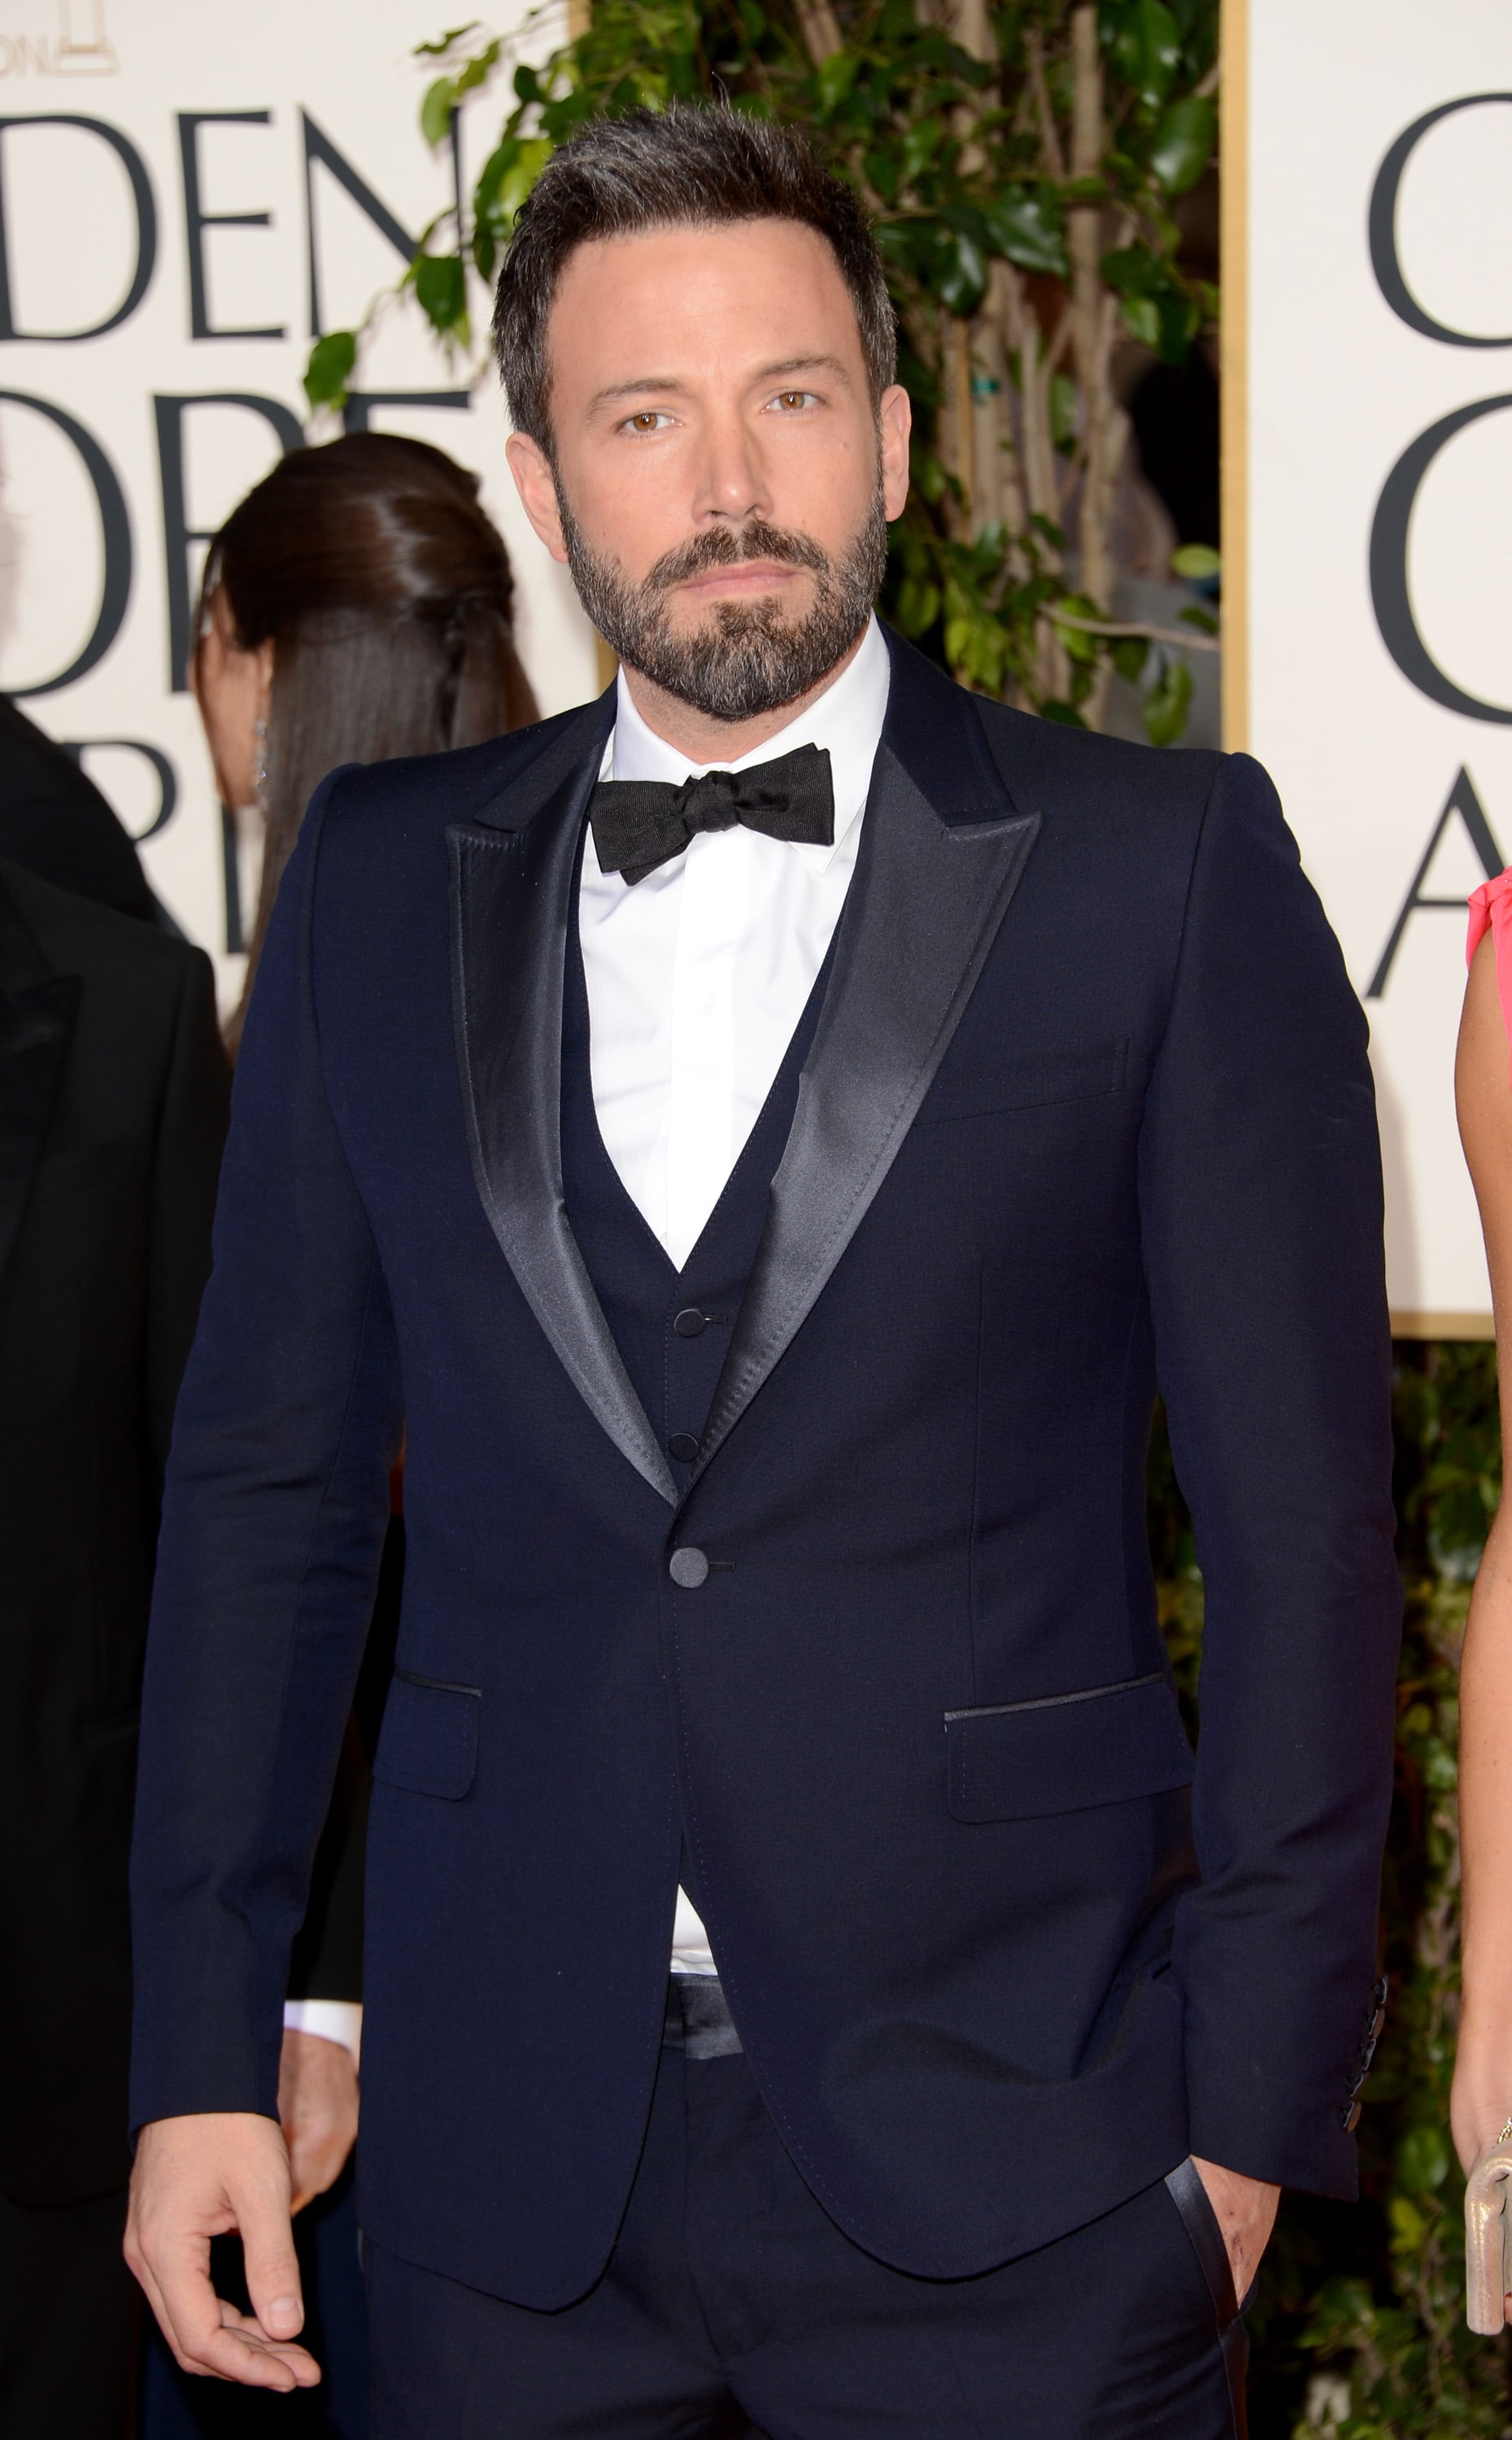 Ben Affleck Goes Formal at the 2013 Golden Globes